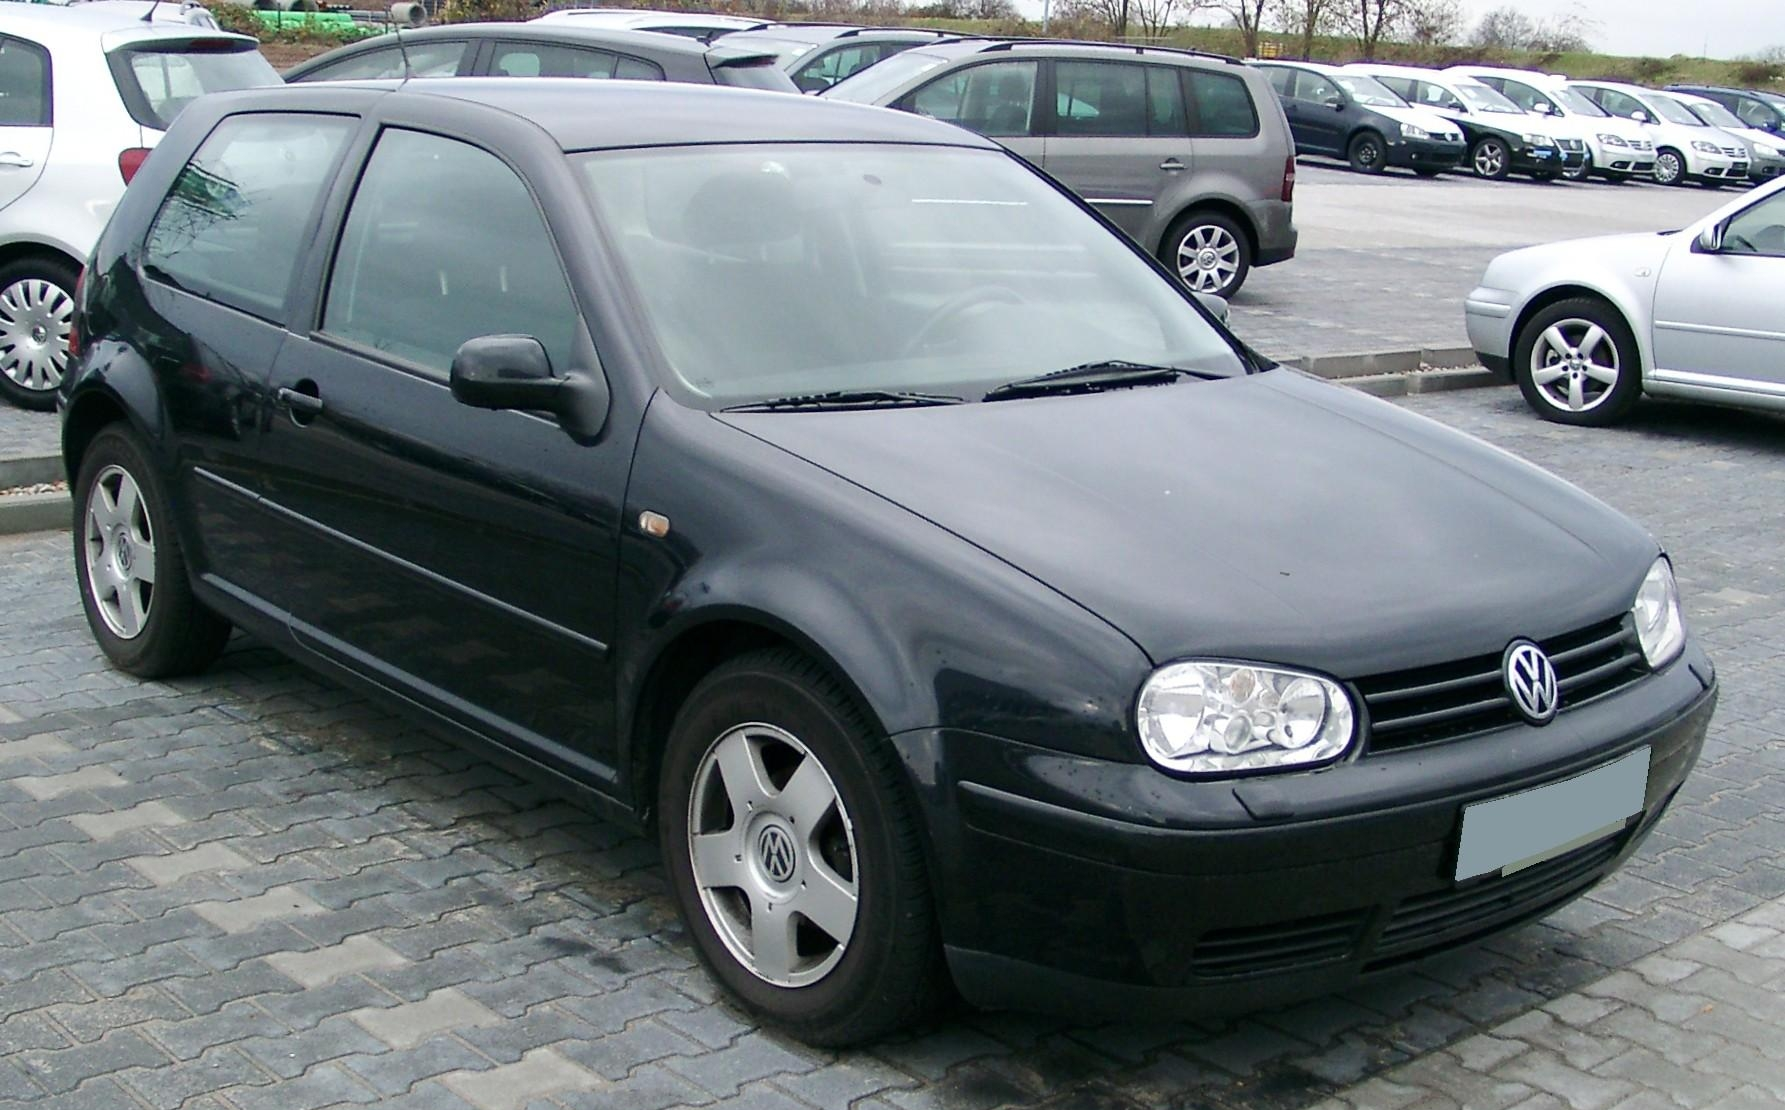 2.44. VW Golf IV